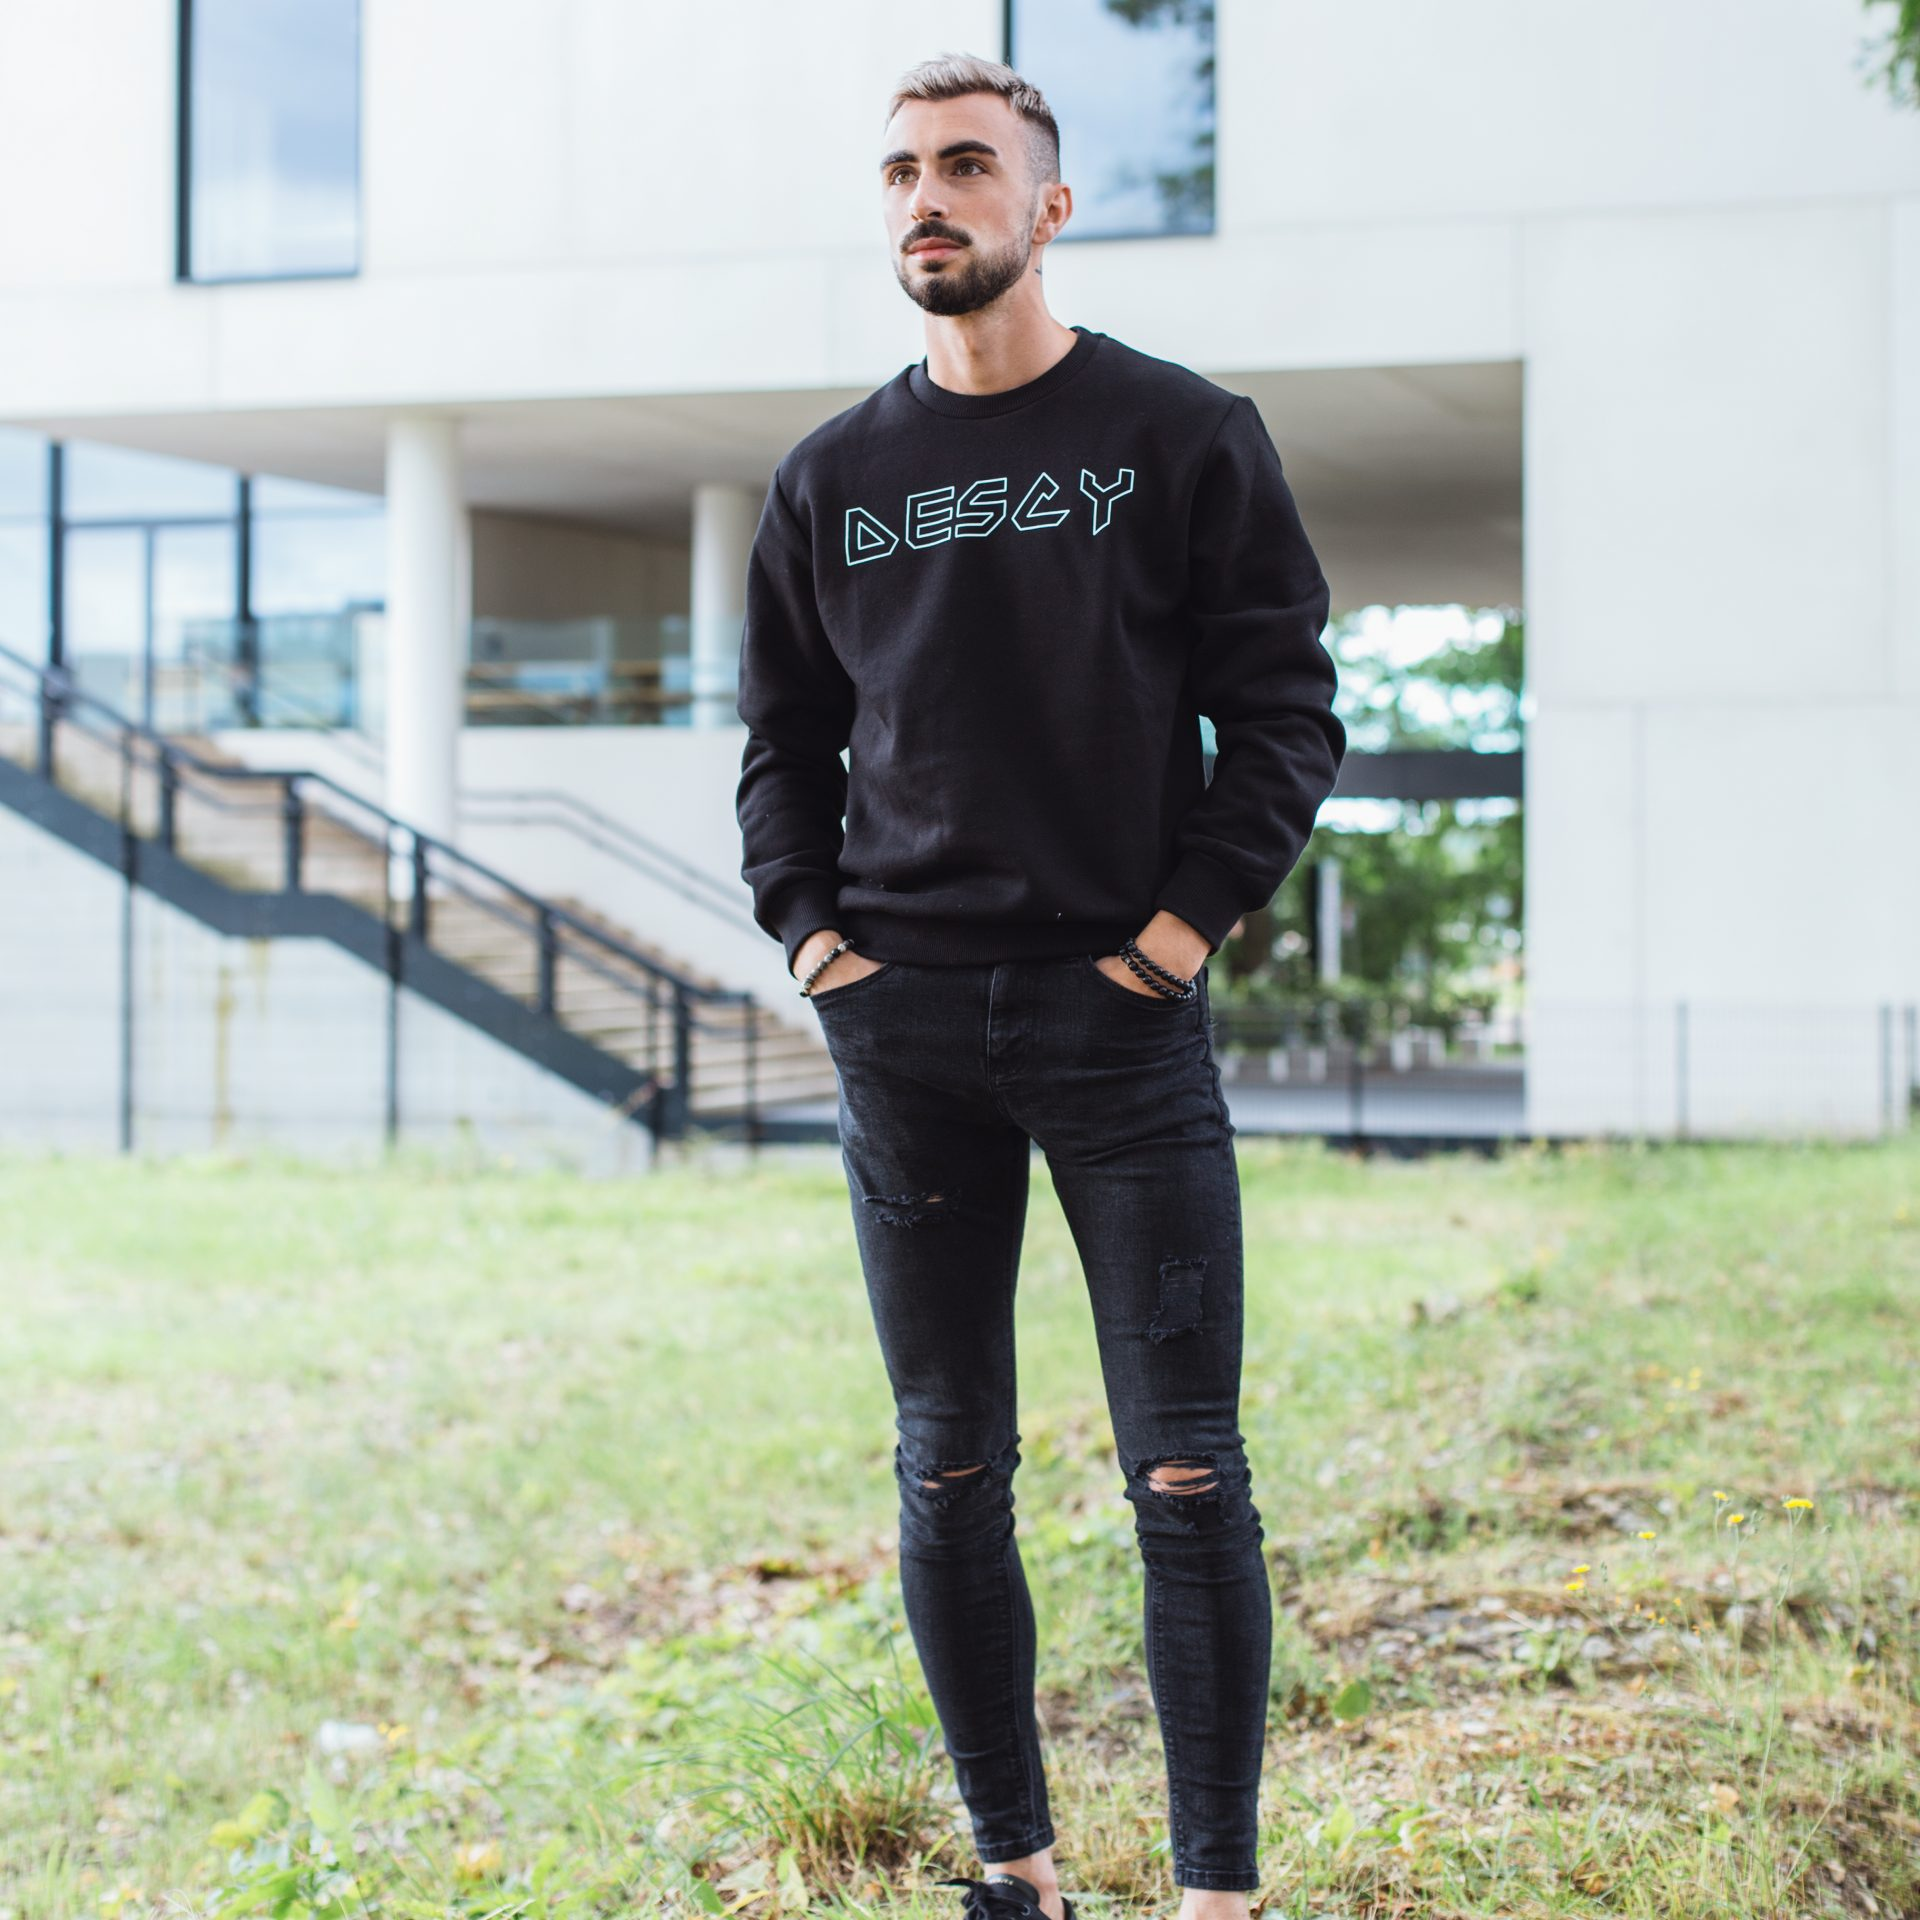 DESCY Iron Logo Sweater Black Unisex